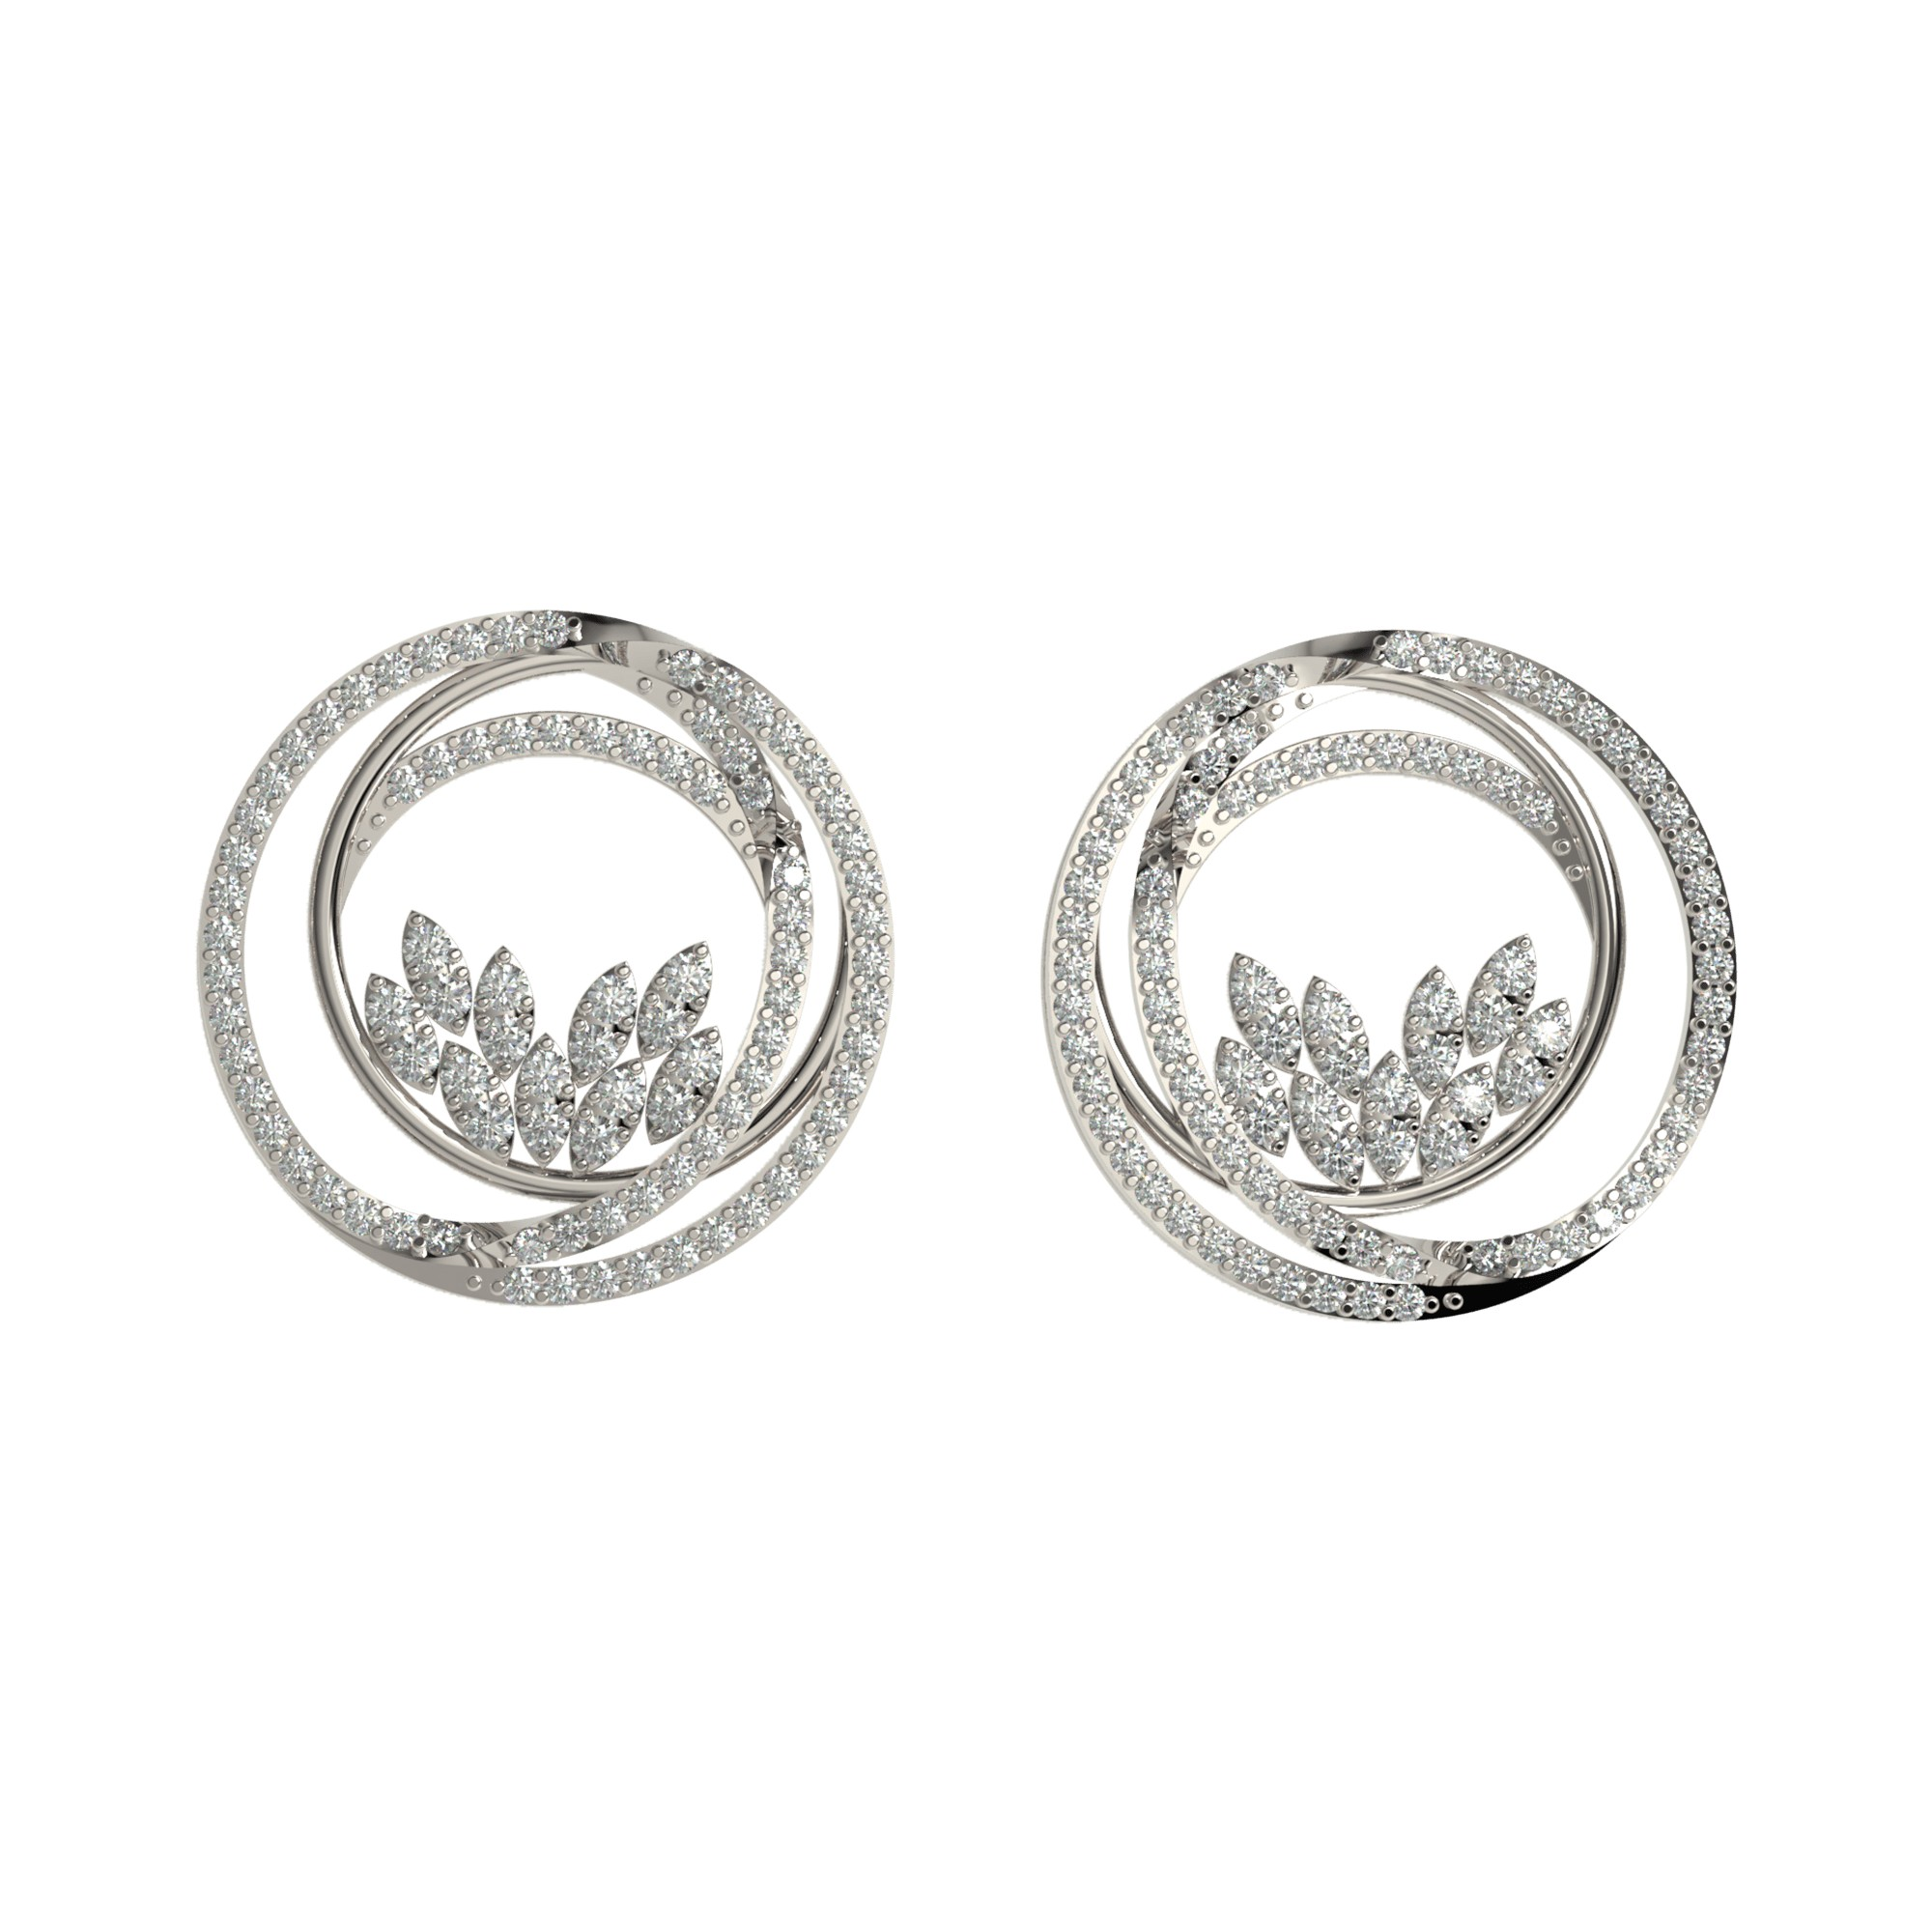 Pure Elegance Earrings